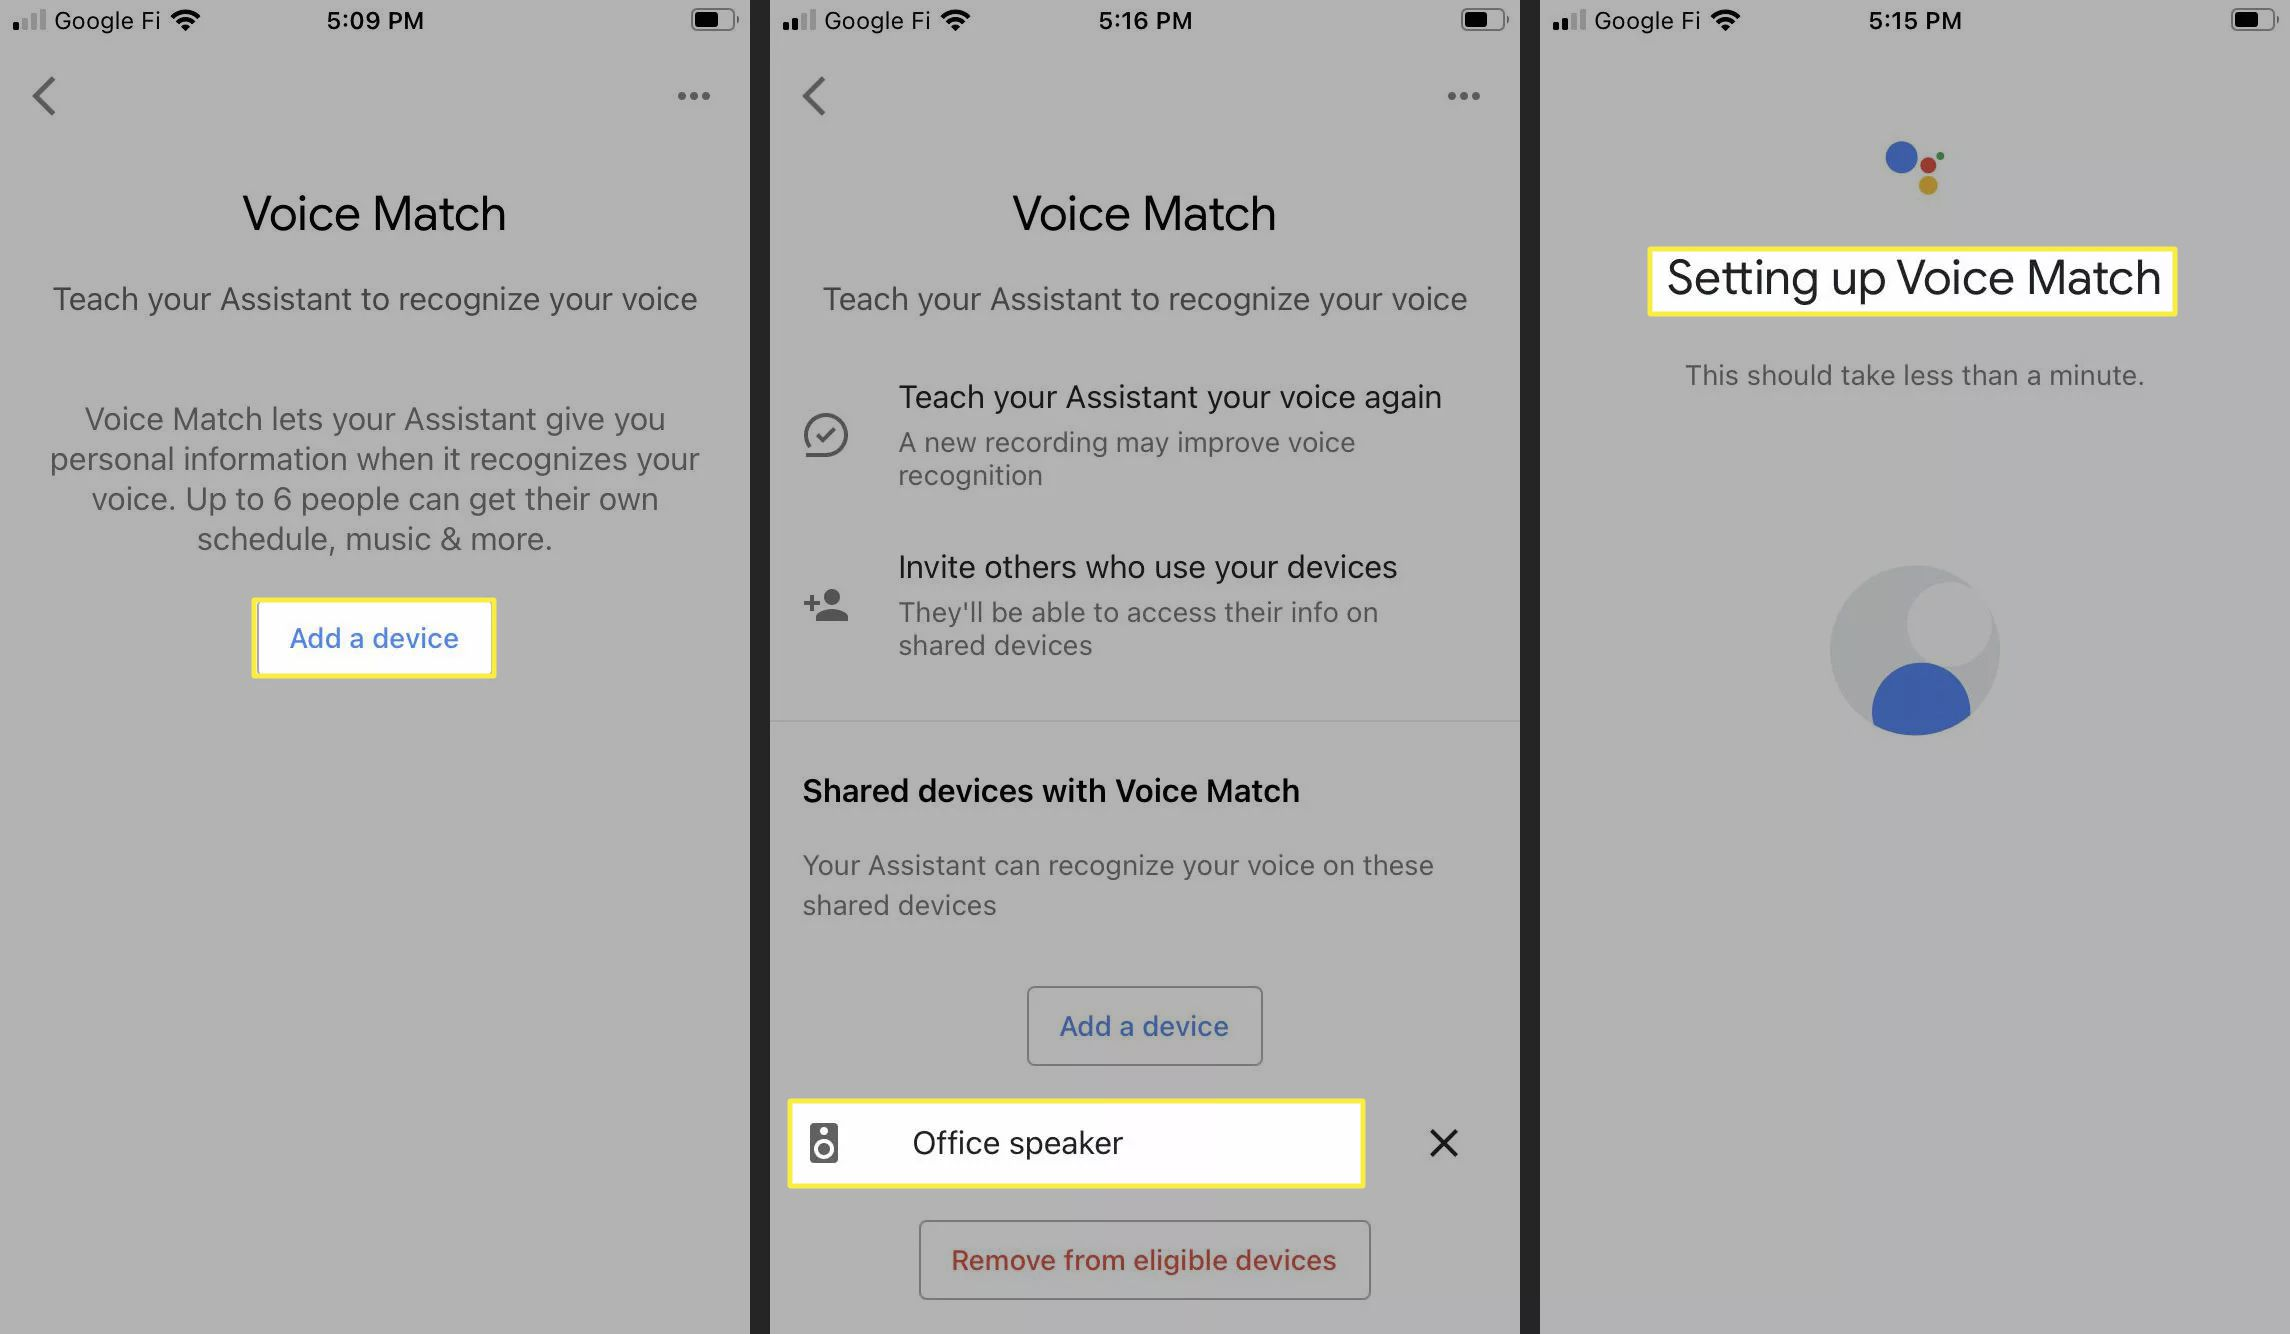 Setting up Voice Match in the Google Home app on the iPhone.